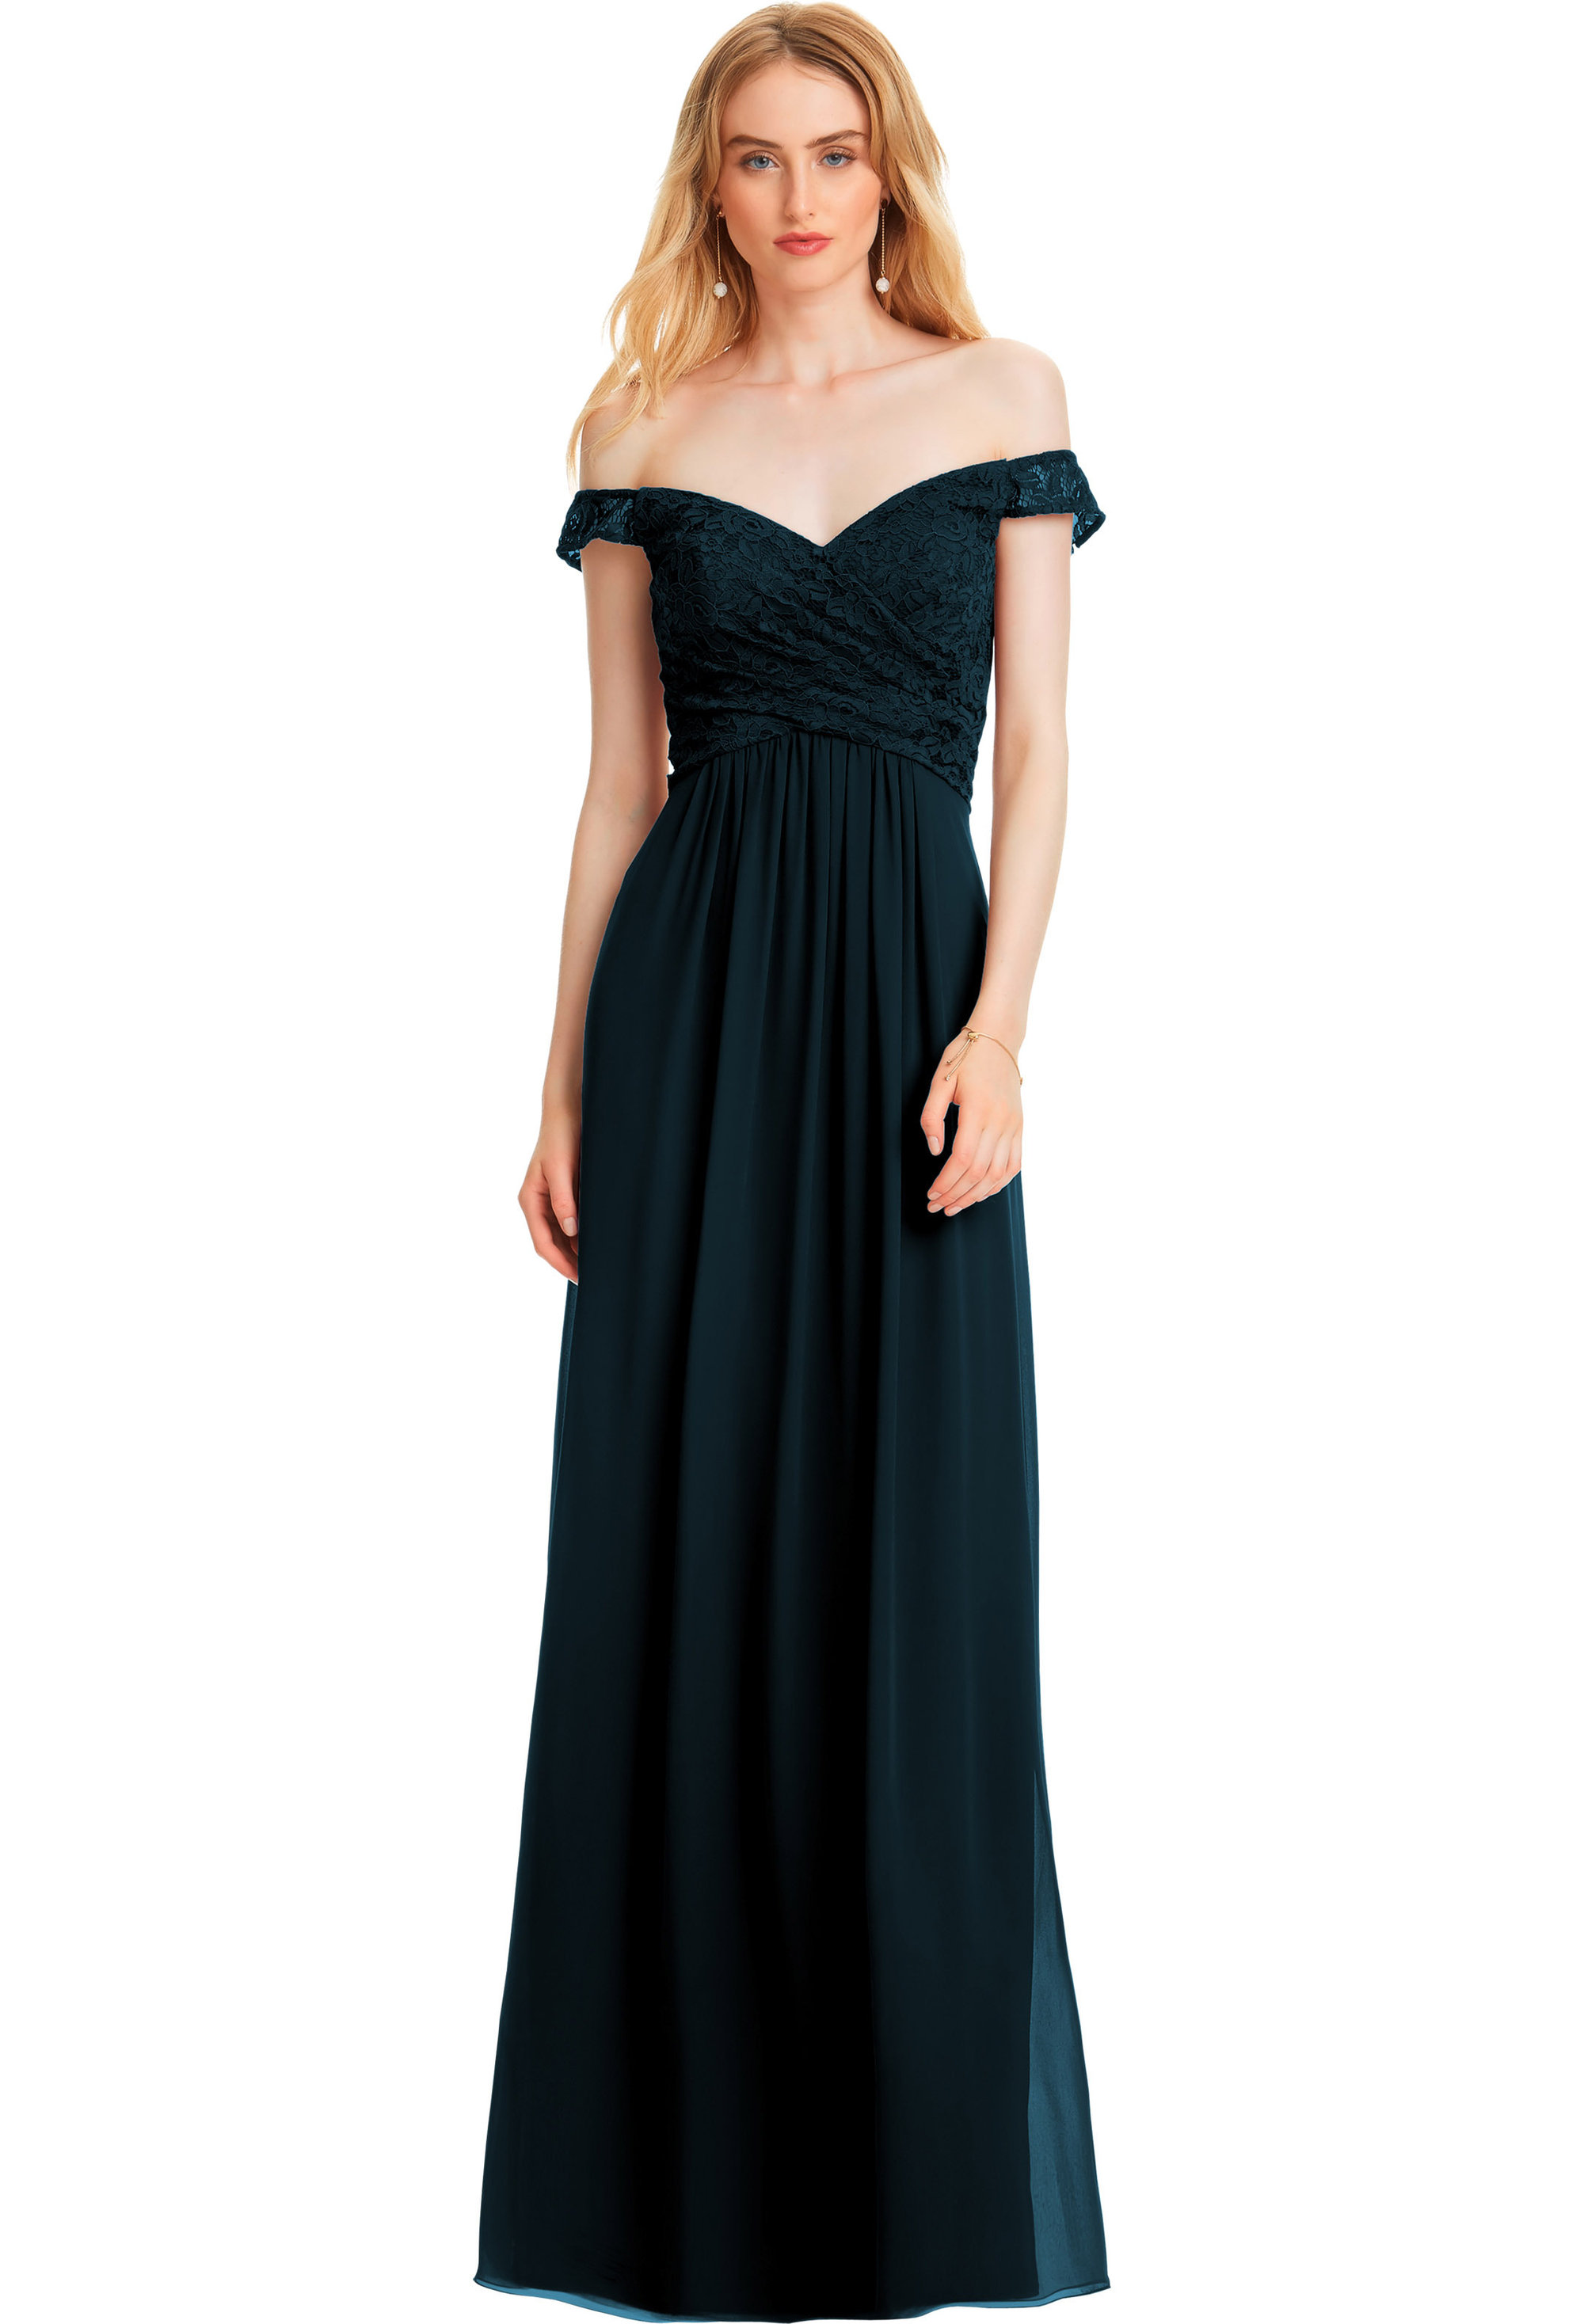 Bill Levkoff NAVY Lace Sweetheart A-line gown, $178.00 Front